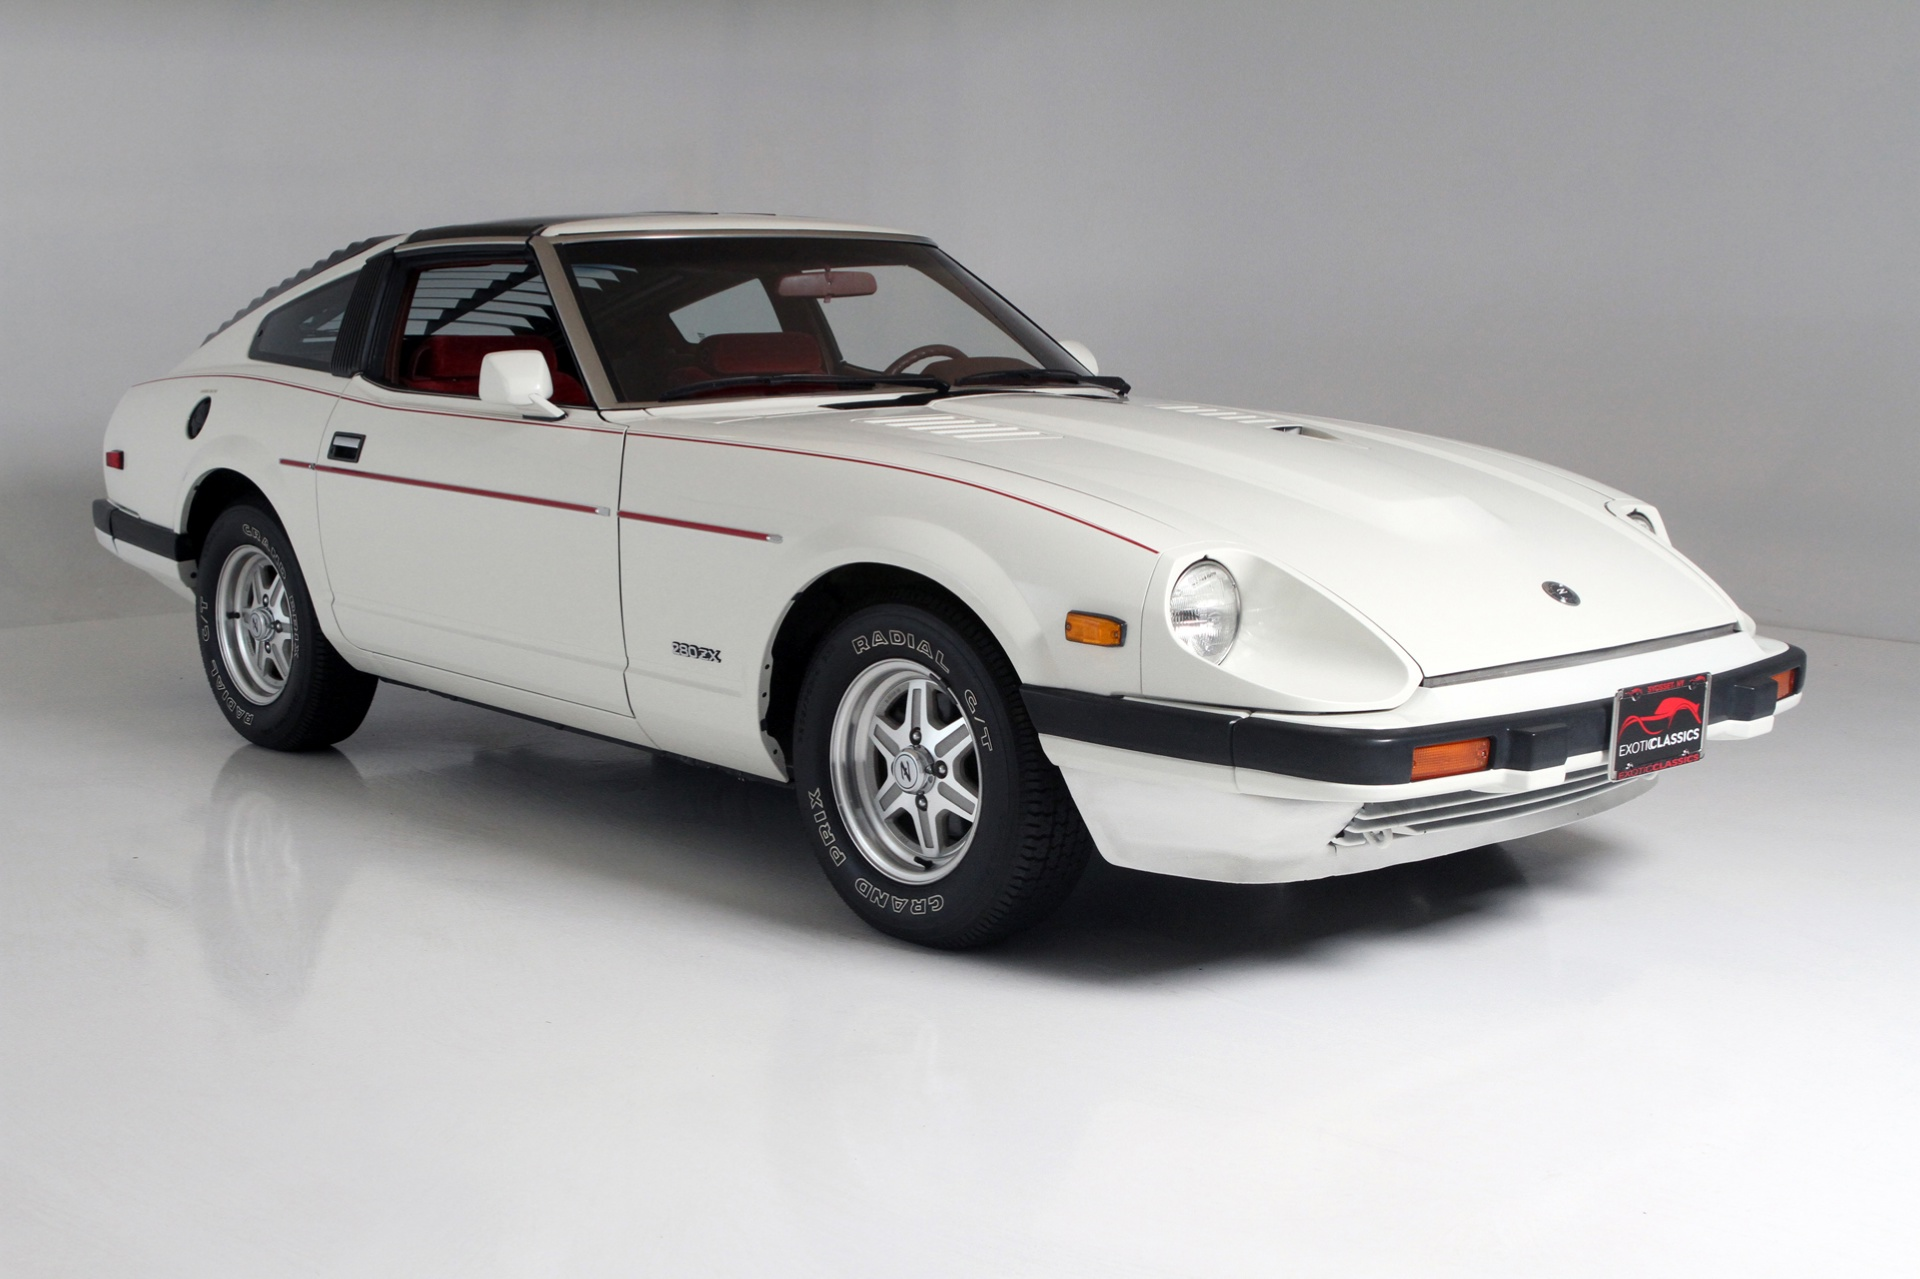 1983 datsun 280zx gl exotic and classic car dealership